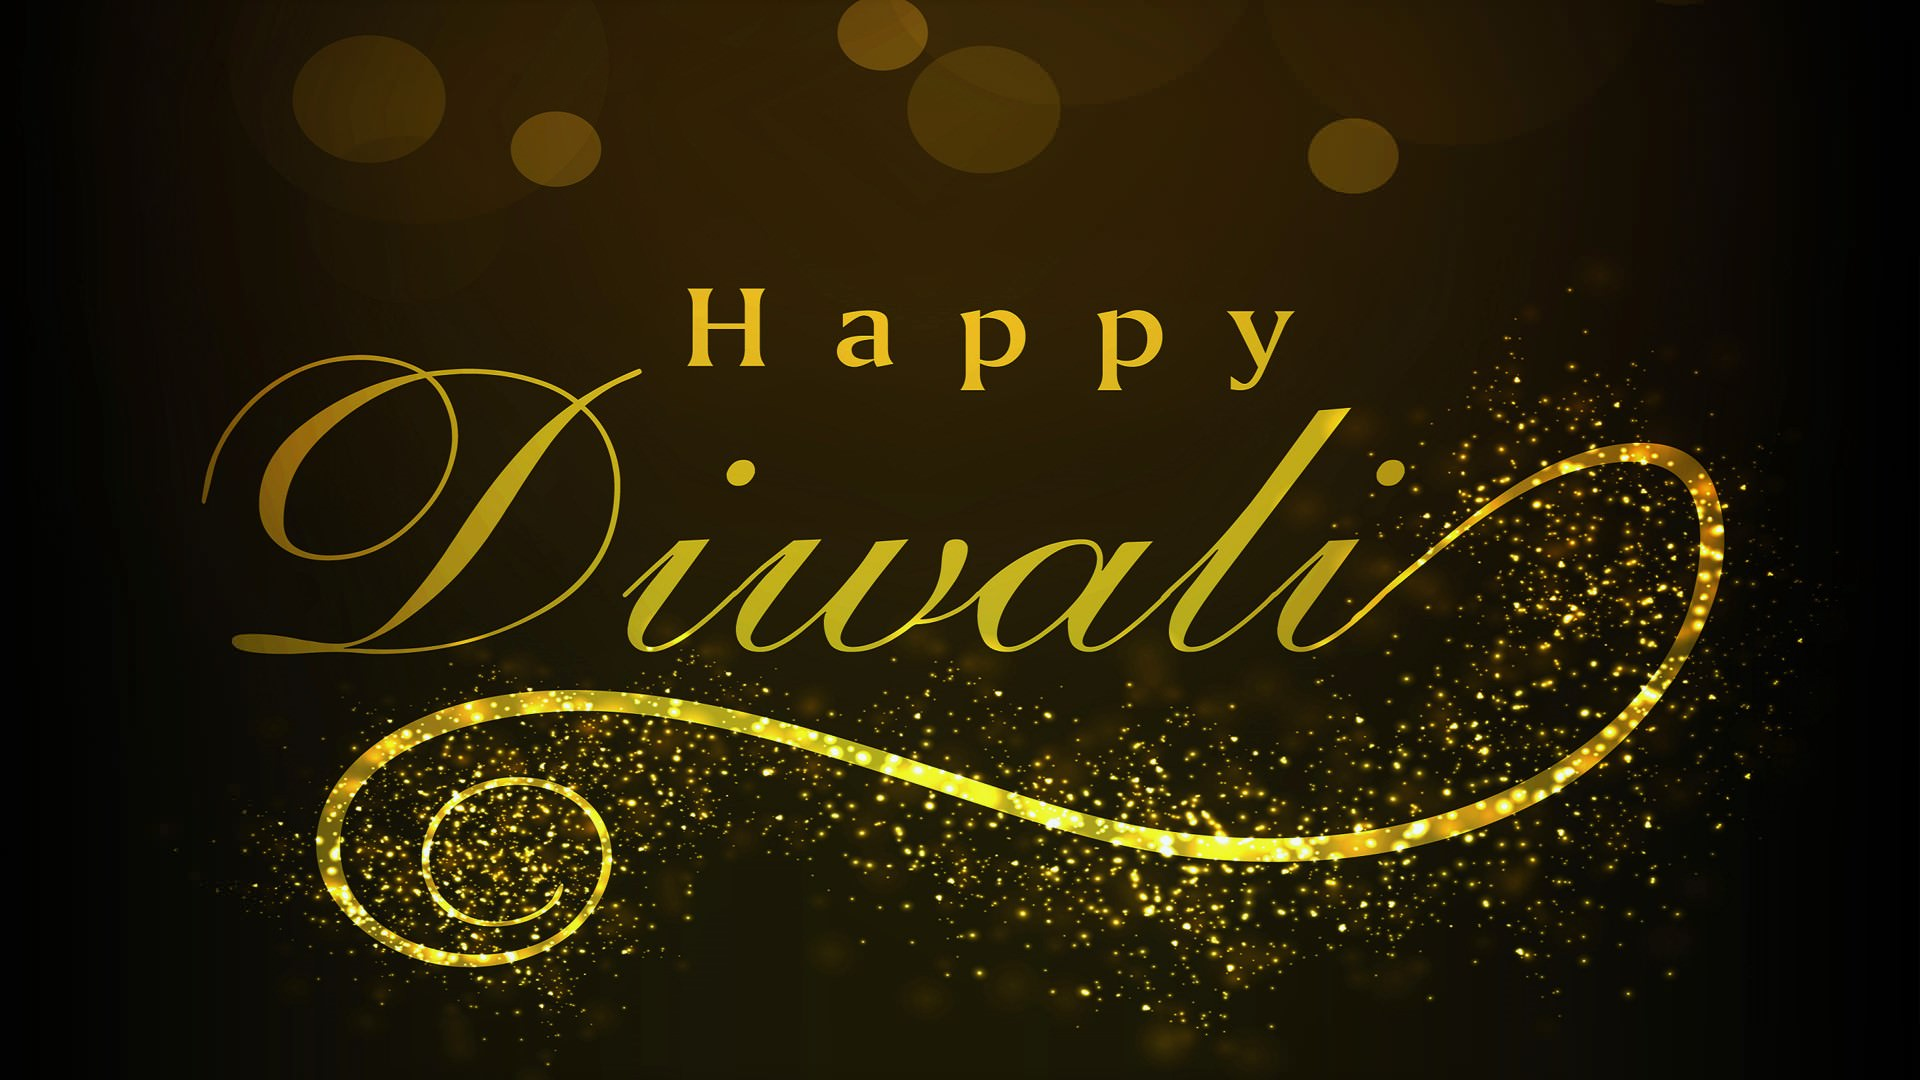 Happy Diwali My Friends